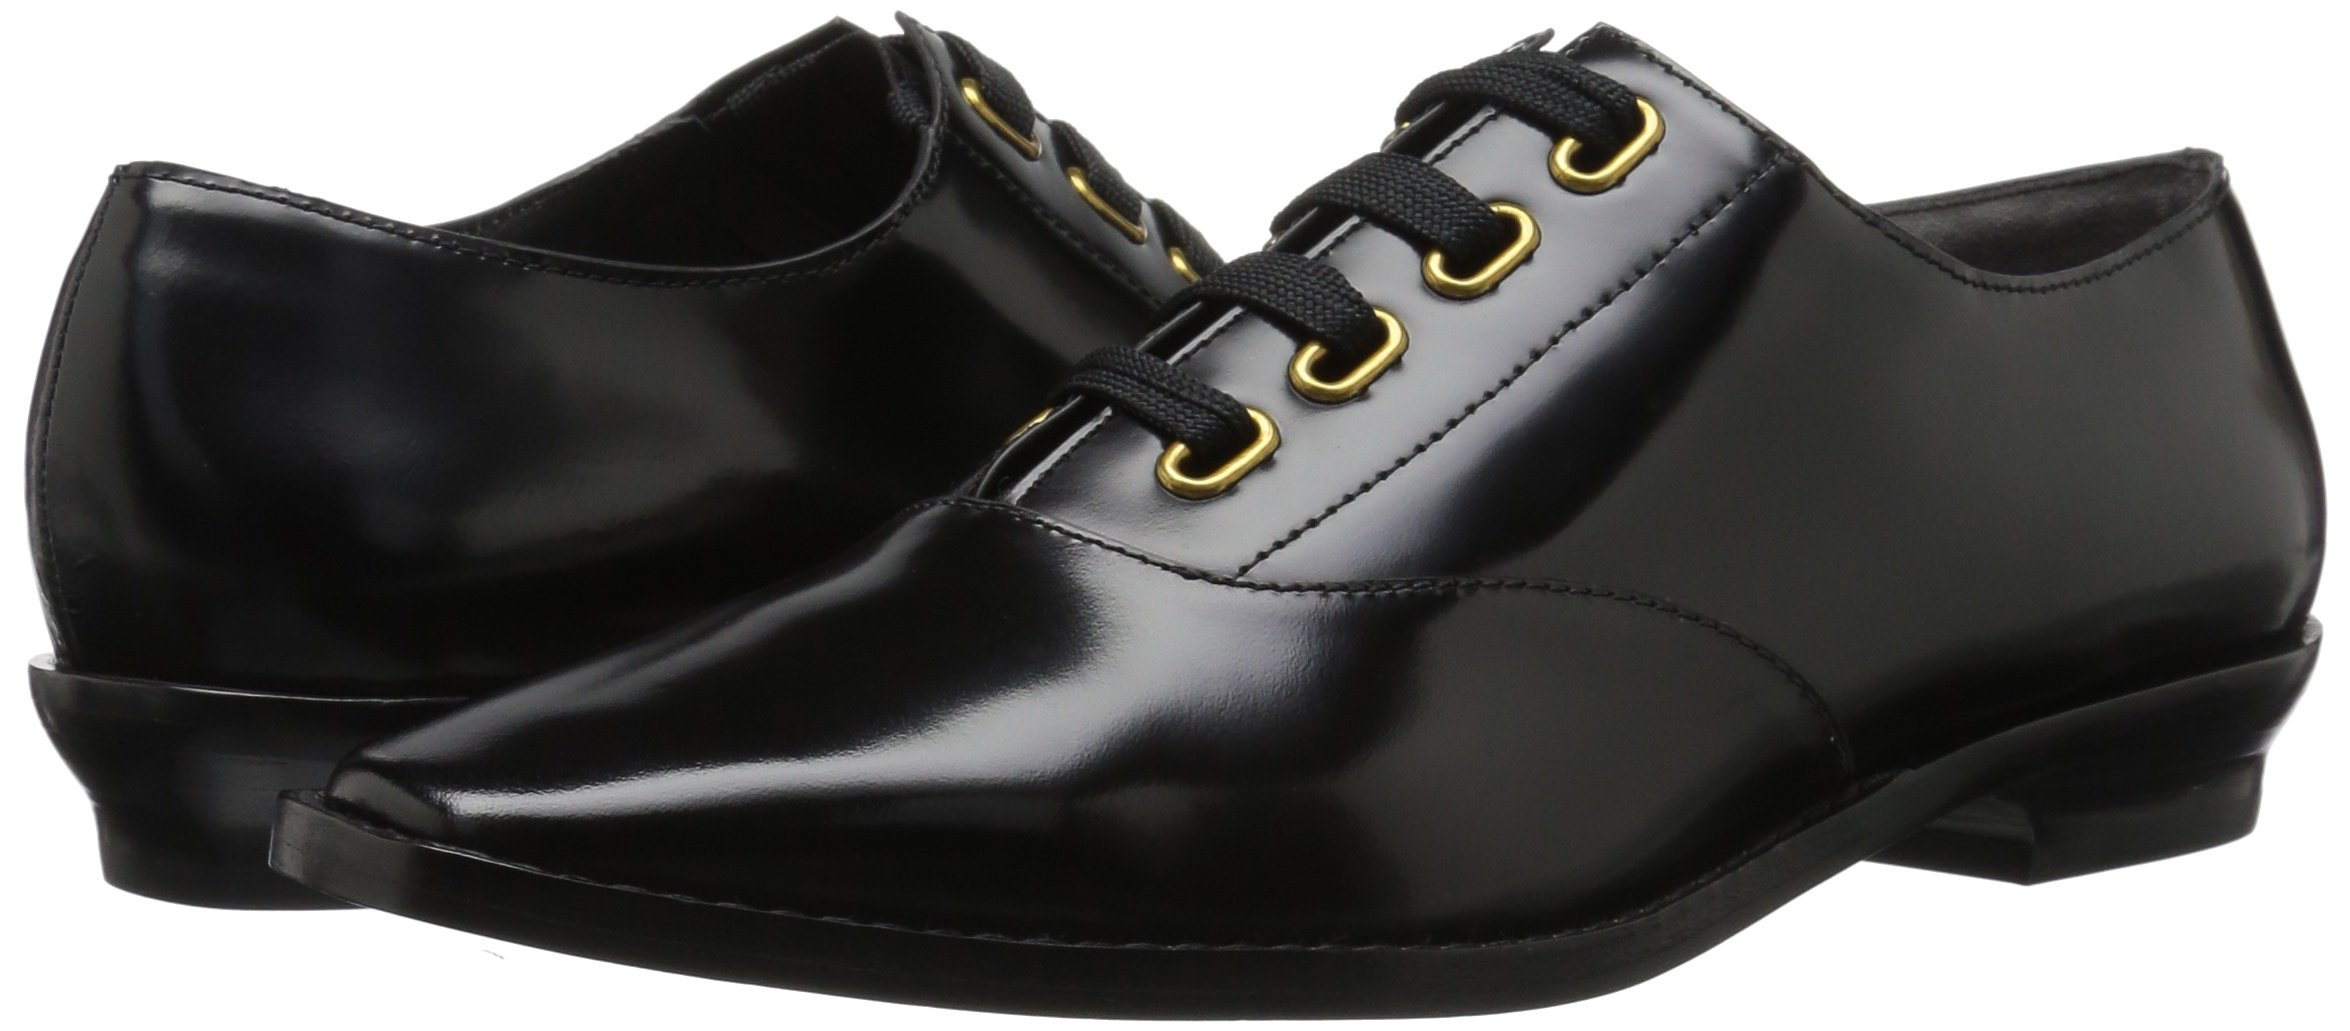 Marc Jacobs Women's Brittany Lace up Oxford, Black, 37 M EU (7 US) by Marc Jacobs (Image #6)